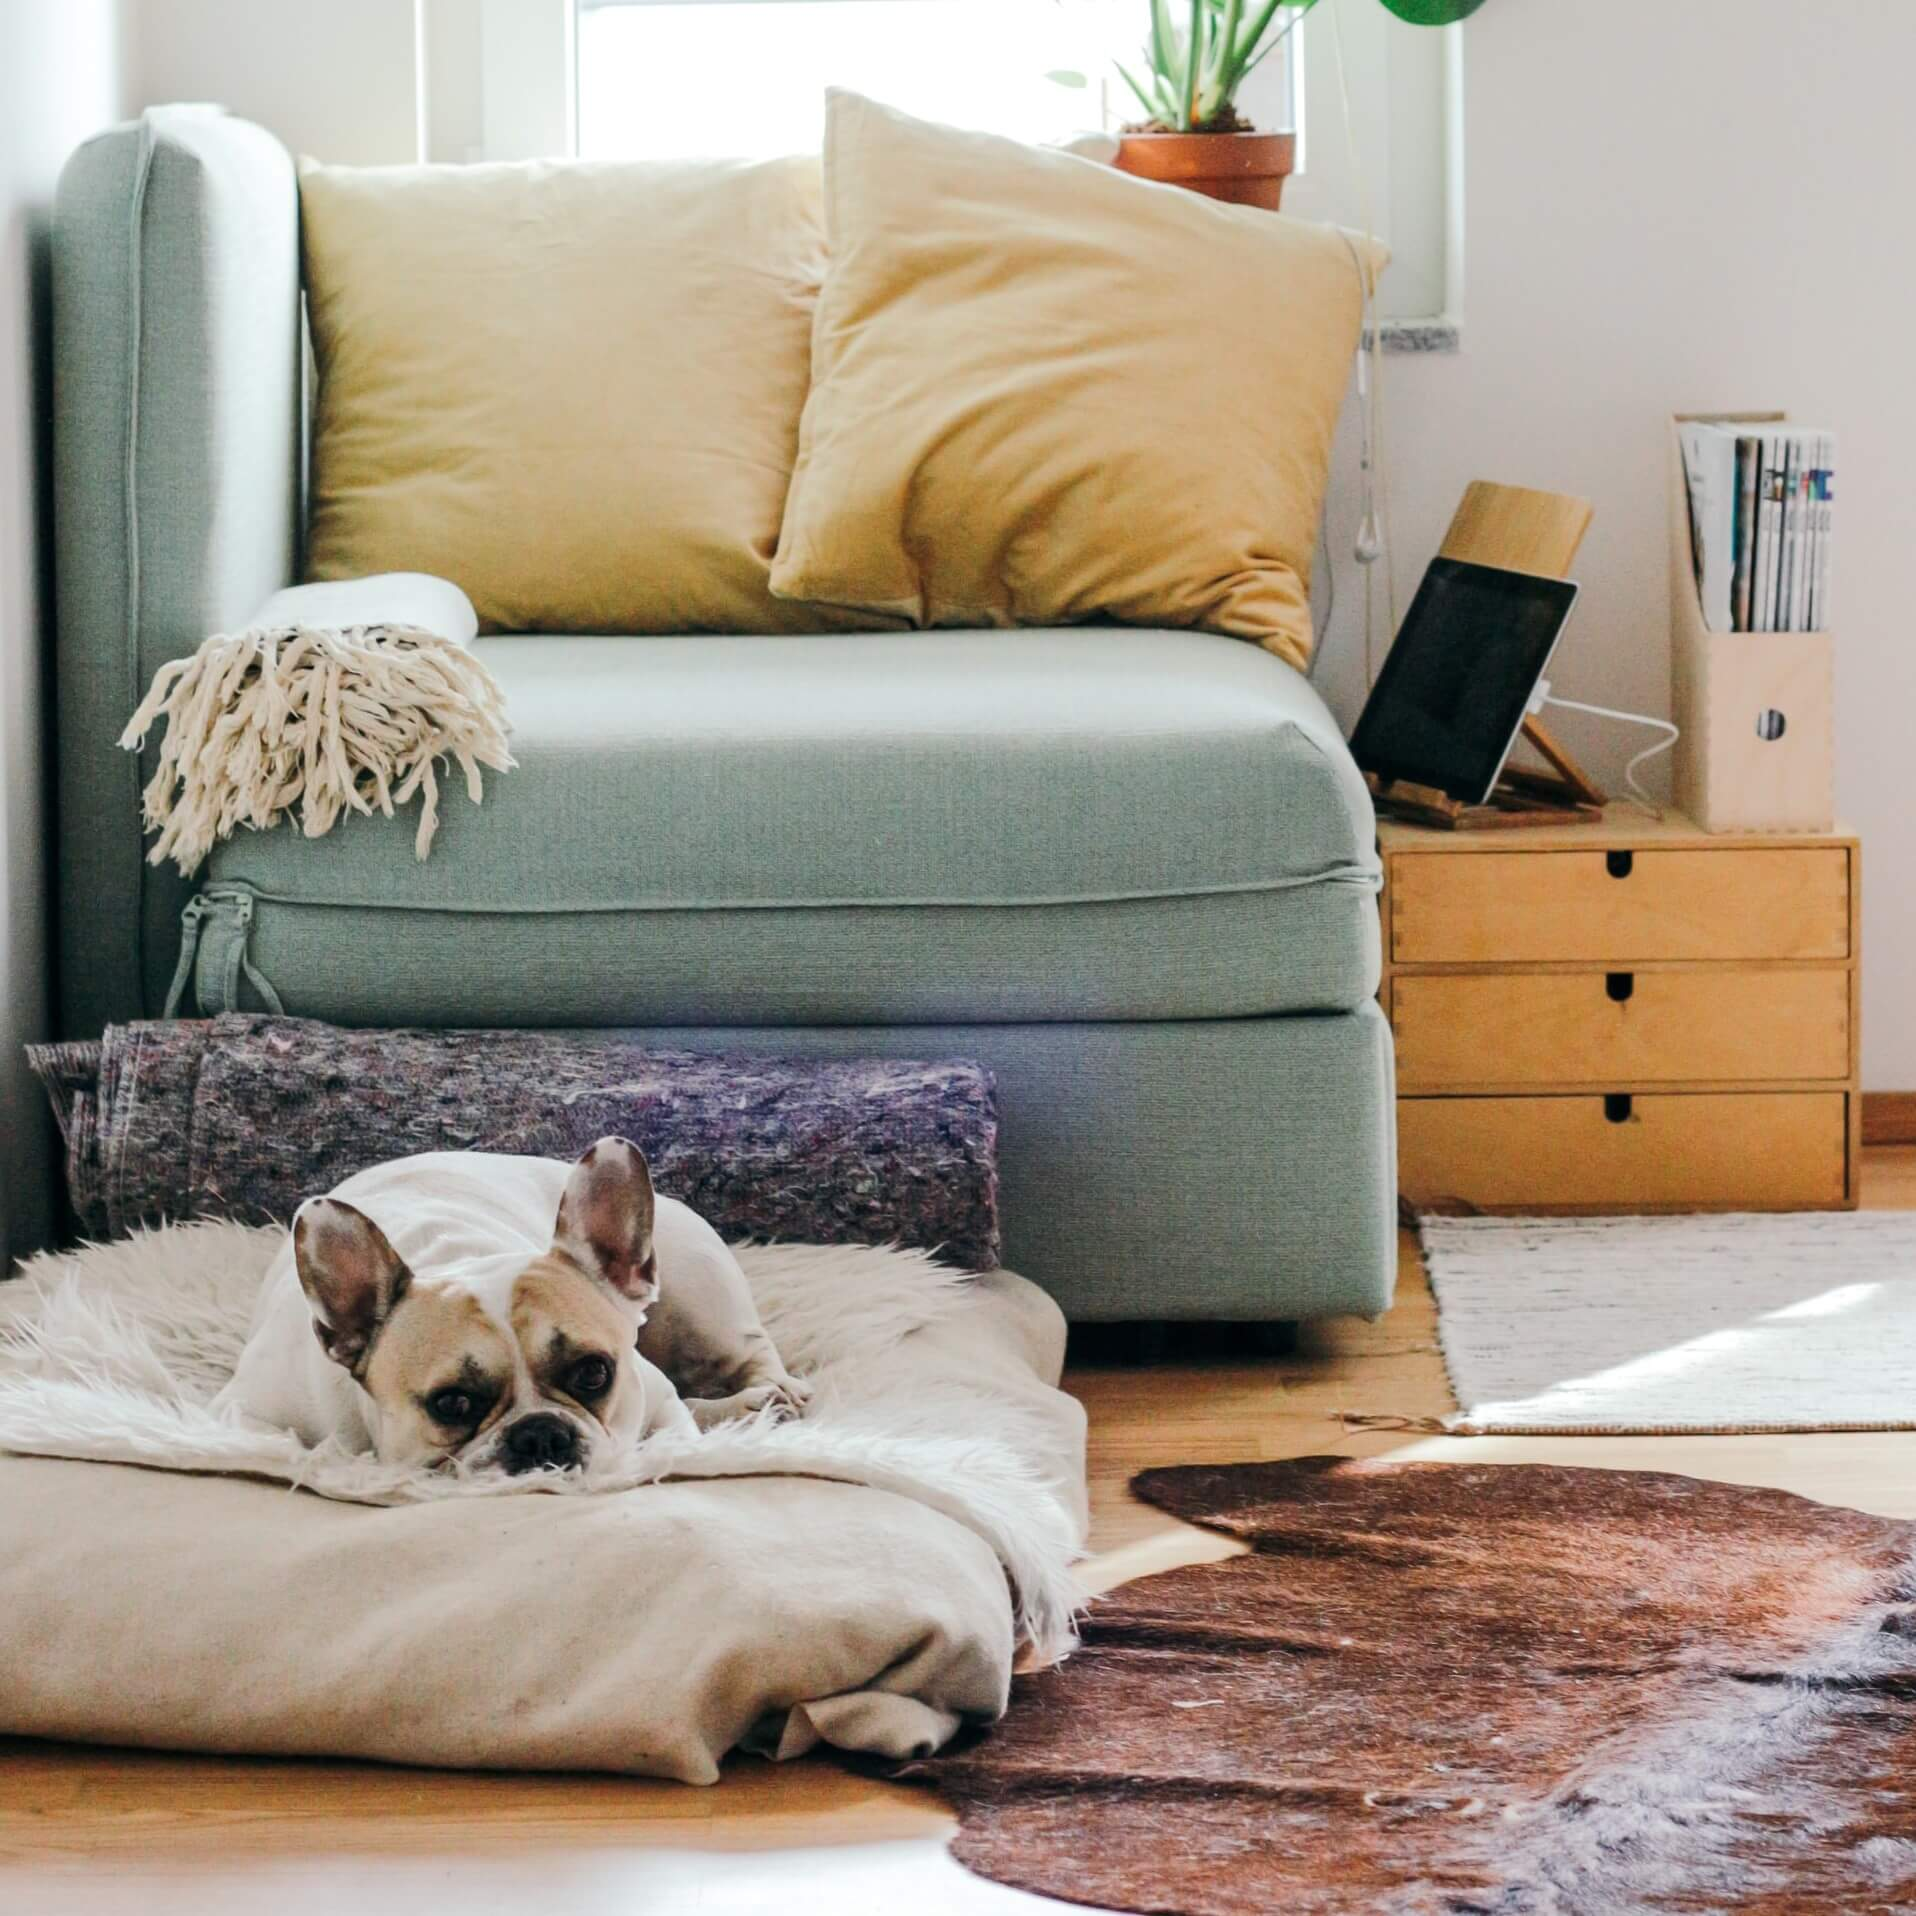 A white dog sleeps on a dog bed in front of a turqoise chair with yellow cushions and drawers beside it Is House Sitting Safe and Other FAQs | bucketlistmylife.com